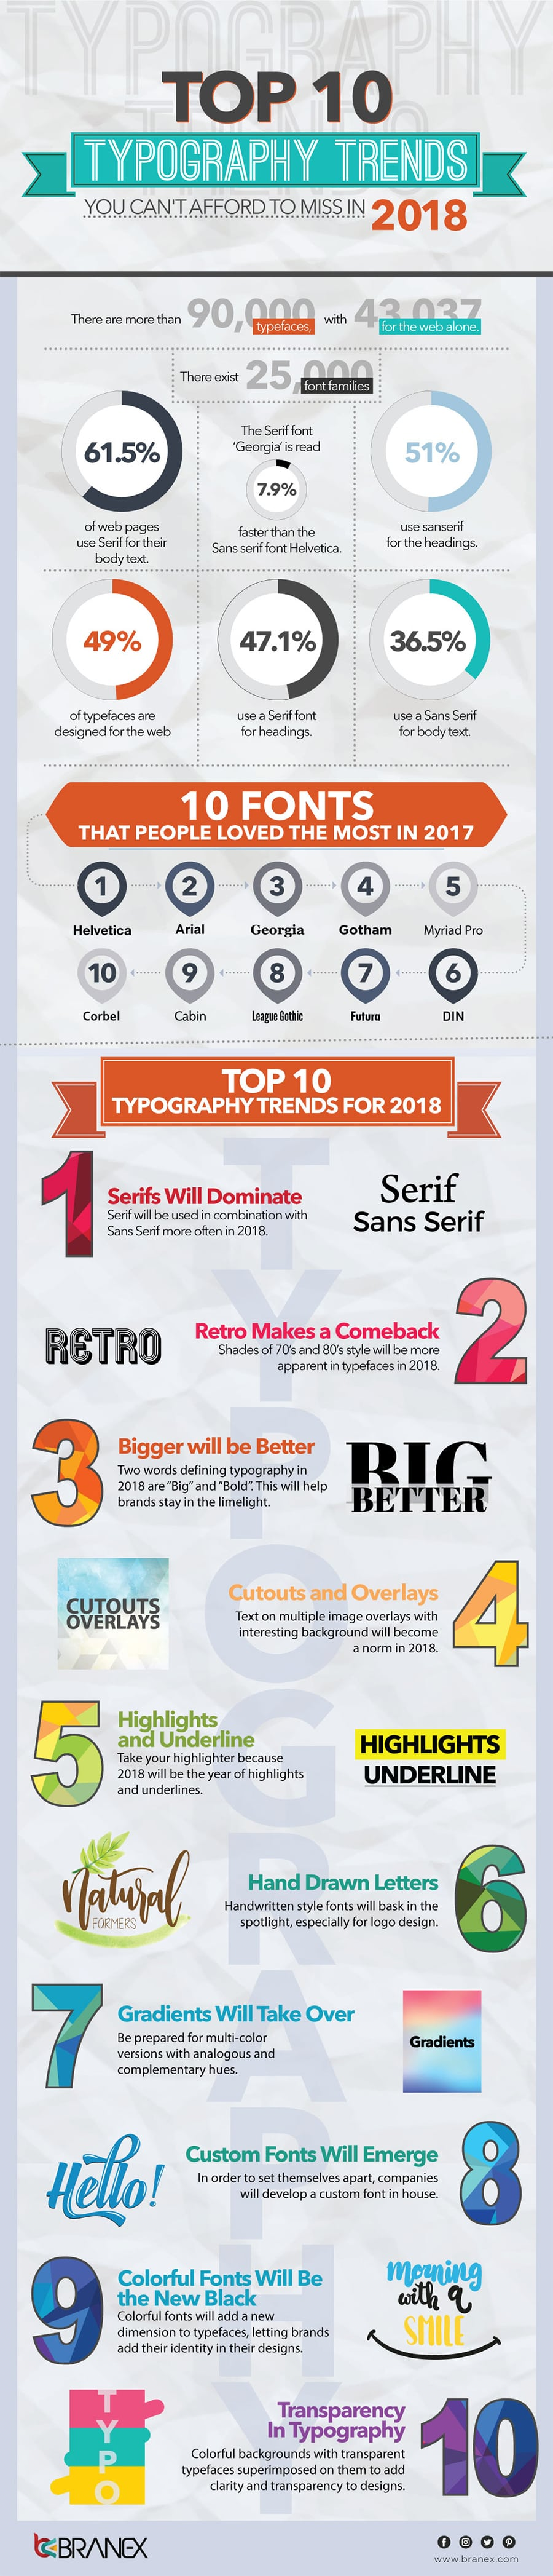 Design: 10 Typography Trends Taking Over 2018